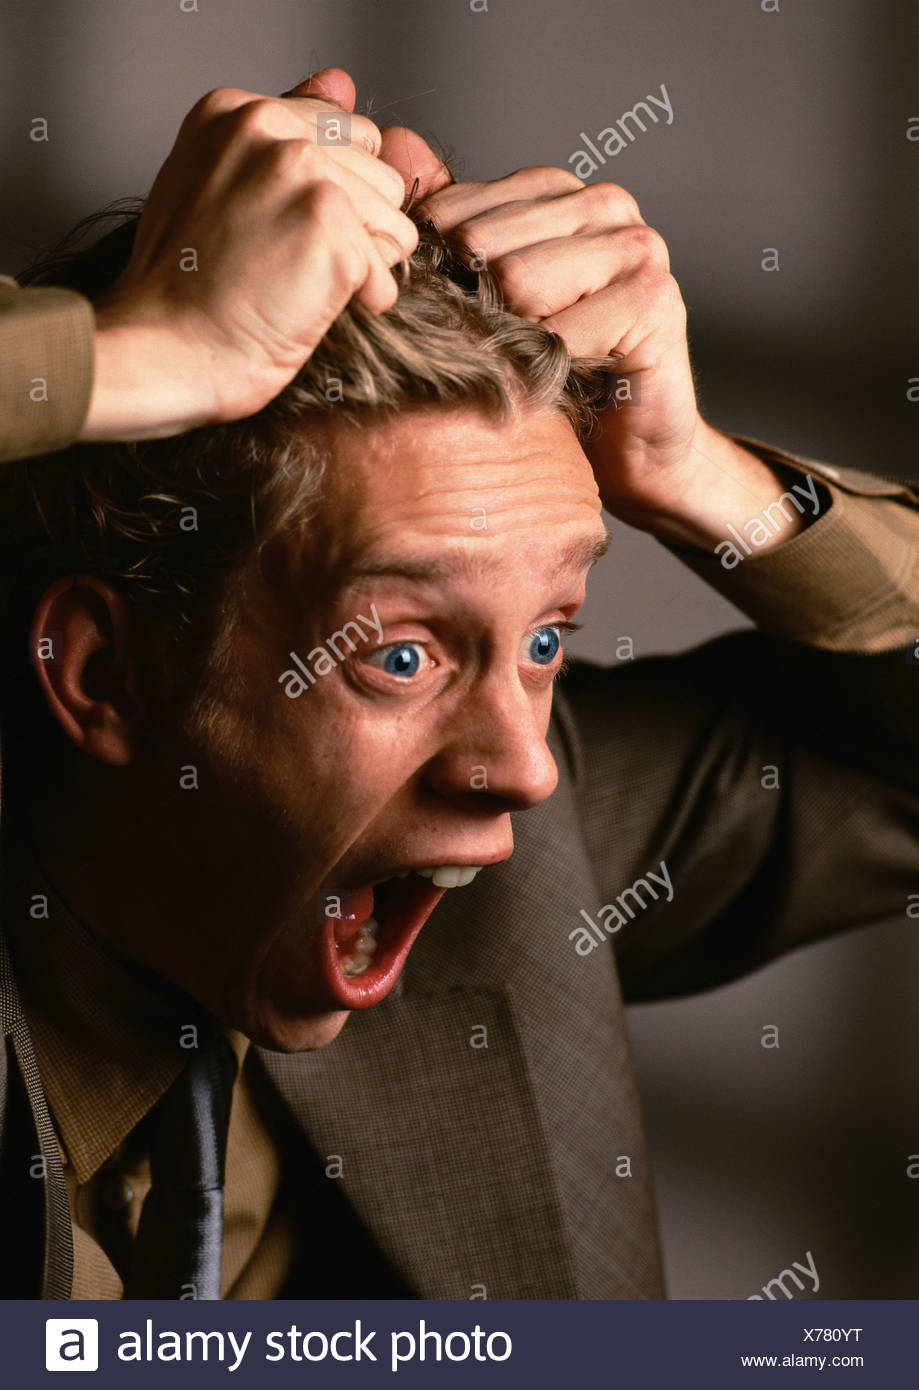 Man with mouth and eyes wide open, pulling hair, close-up - Stock Image